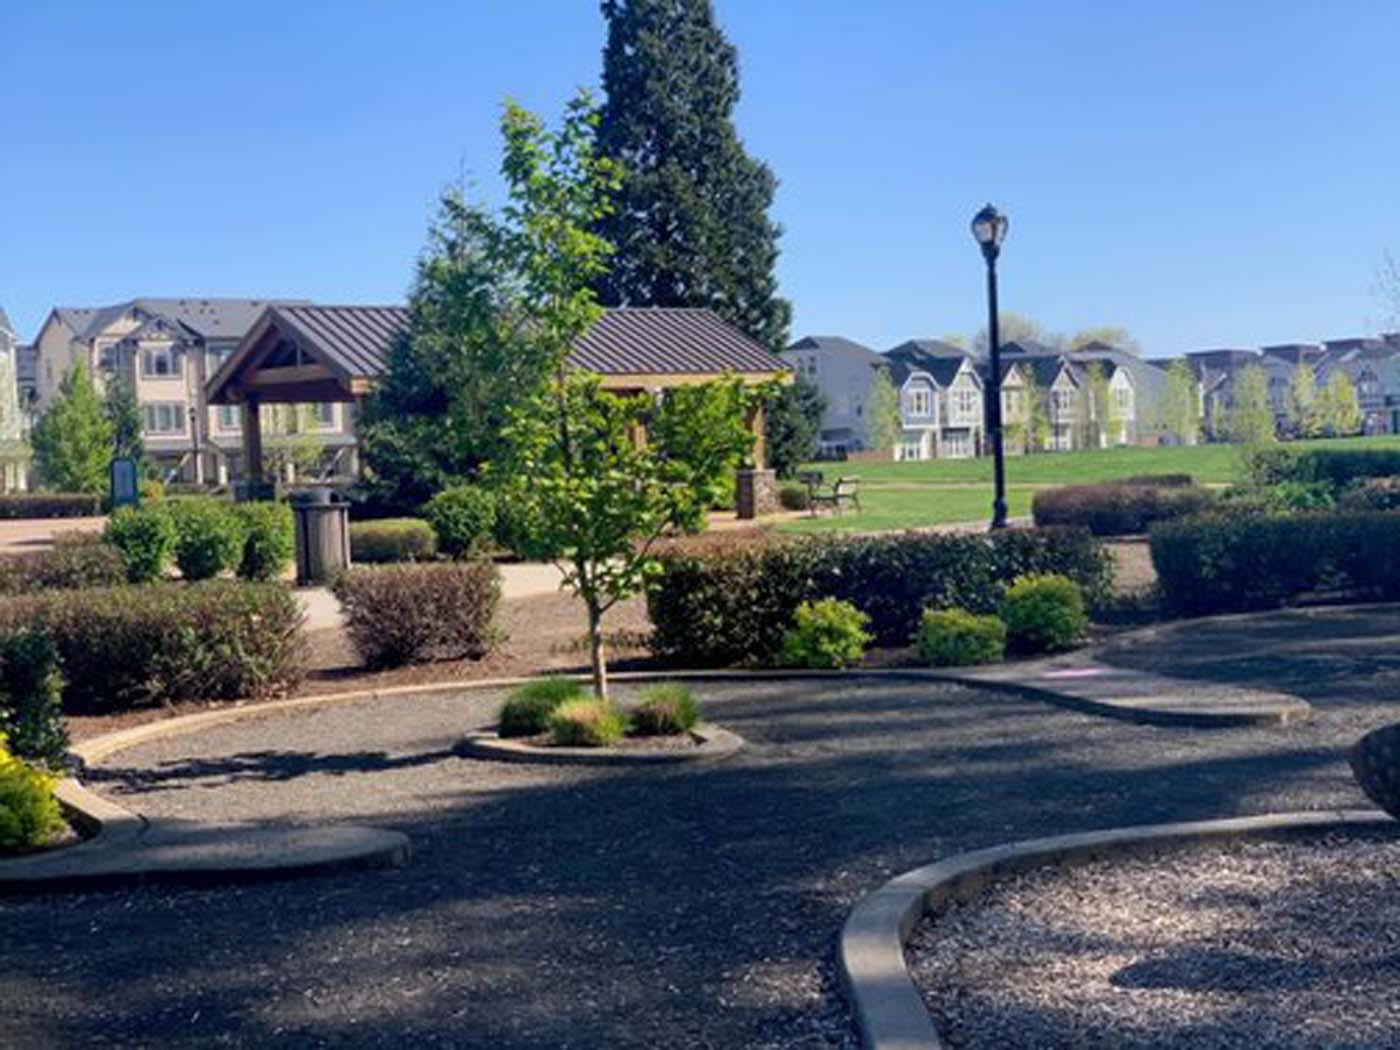 Safe Outdoor Walking Paths at Domaine at Villebois Apartment Homes, Wilsonville, Oregon